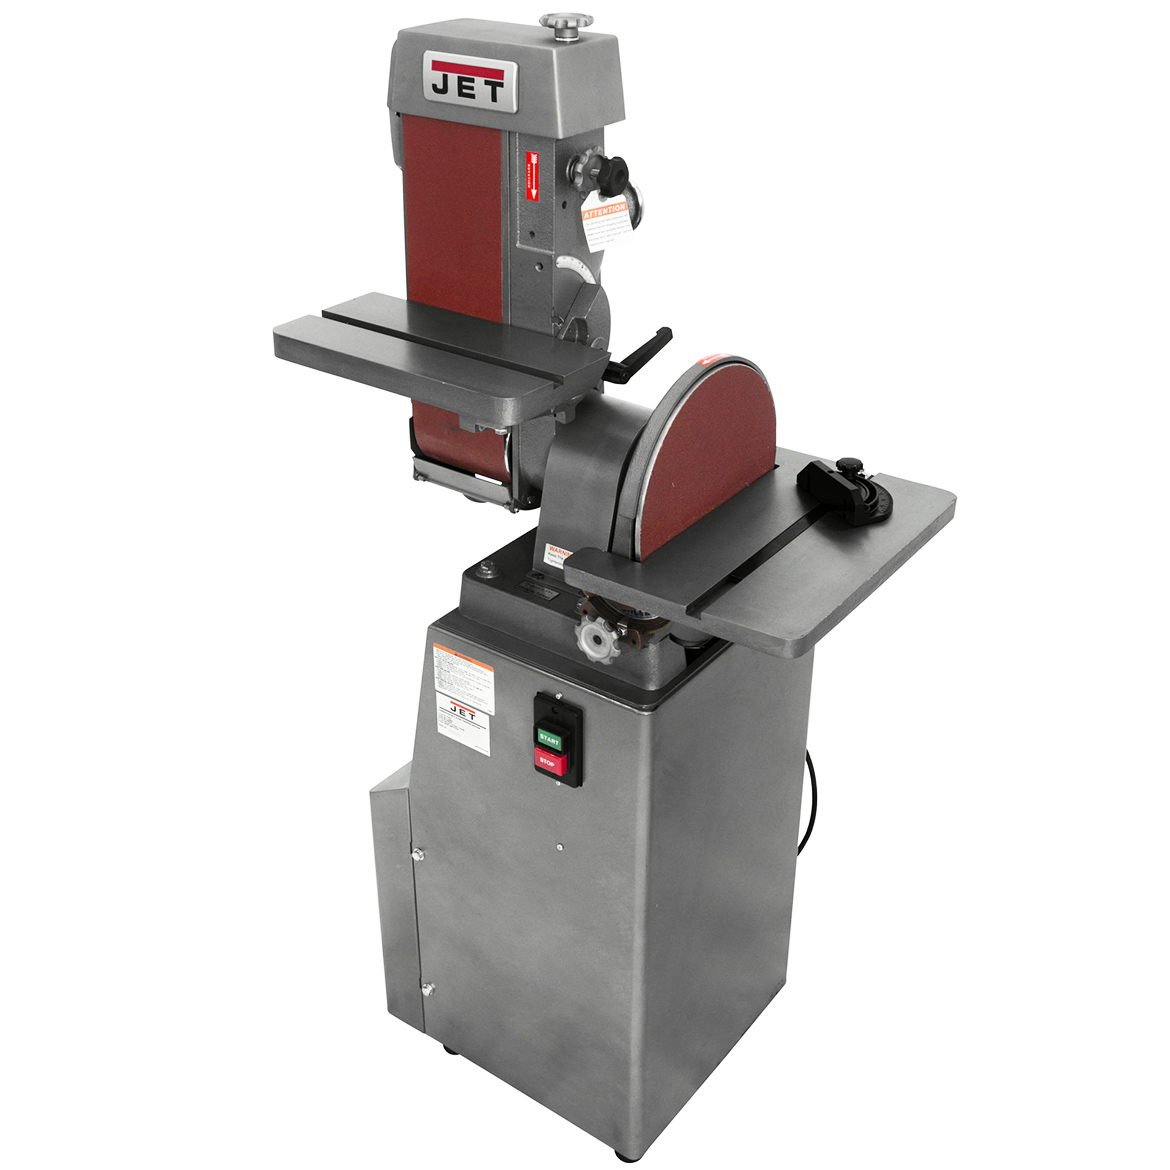 Jet J-4200A, 6 x 48 Industrial Combination Belt and Disc Finishing Machine 115V 1Ph (414551) by JPW Industries